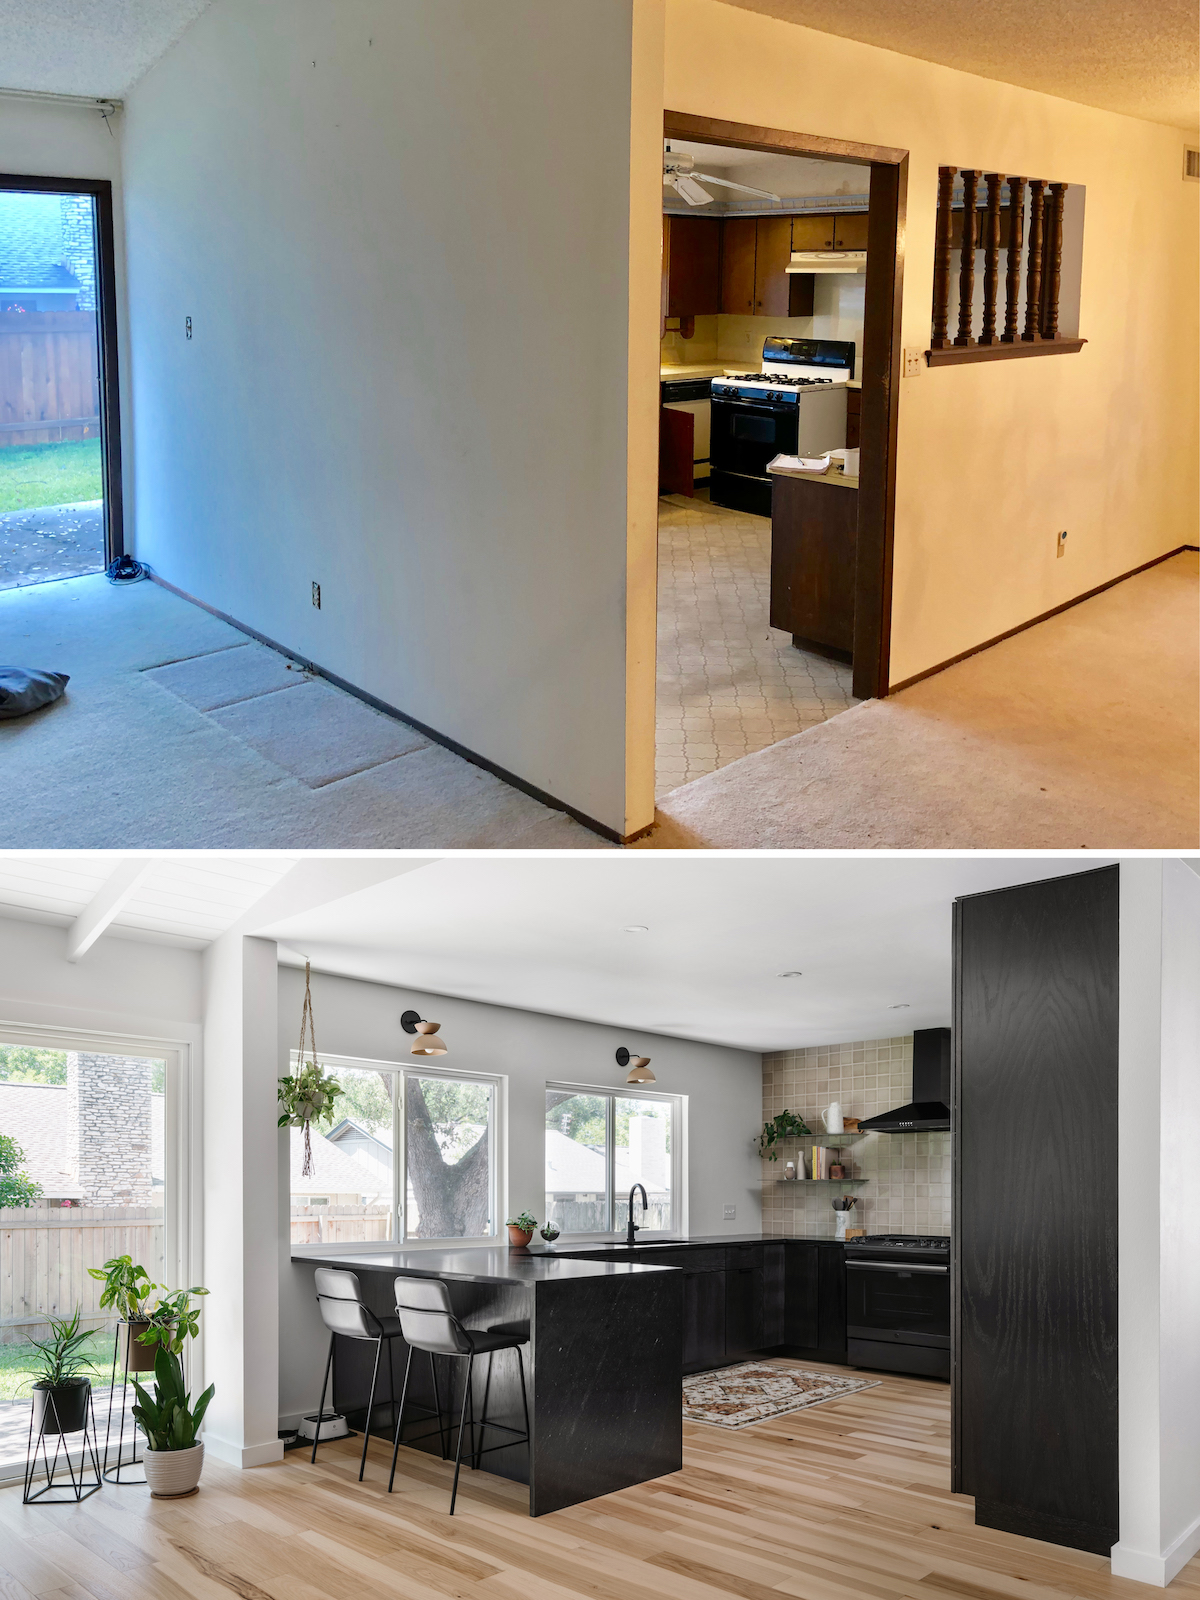 1970s Kitchen Remodel Before and Afters > The Effortless Chic on Modern:gijub4Bif1S= Kitchen Remodel  id=75238